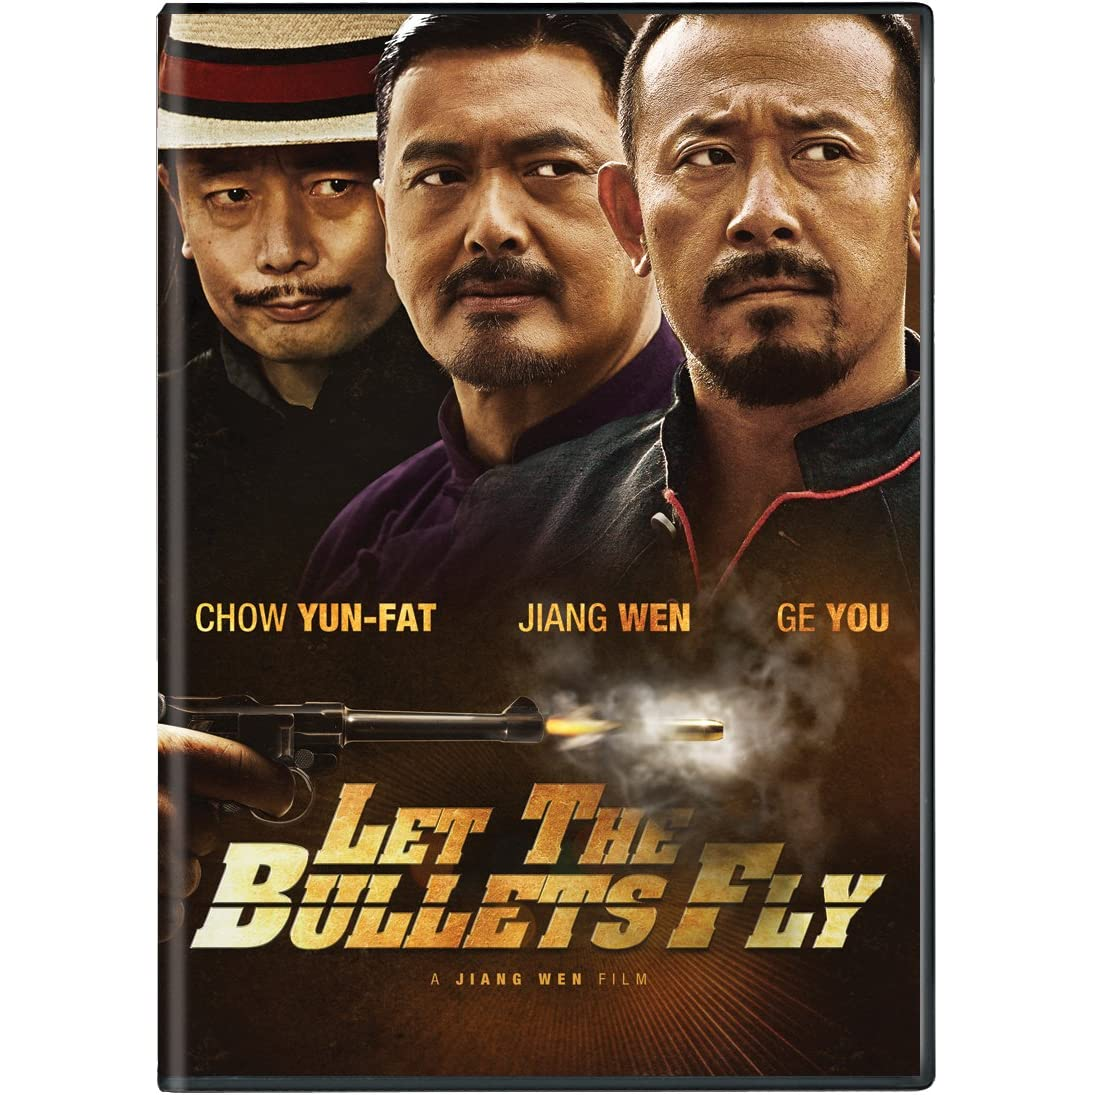 Let the Bullets Fly Reviews